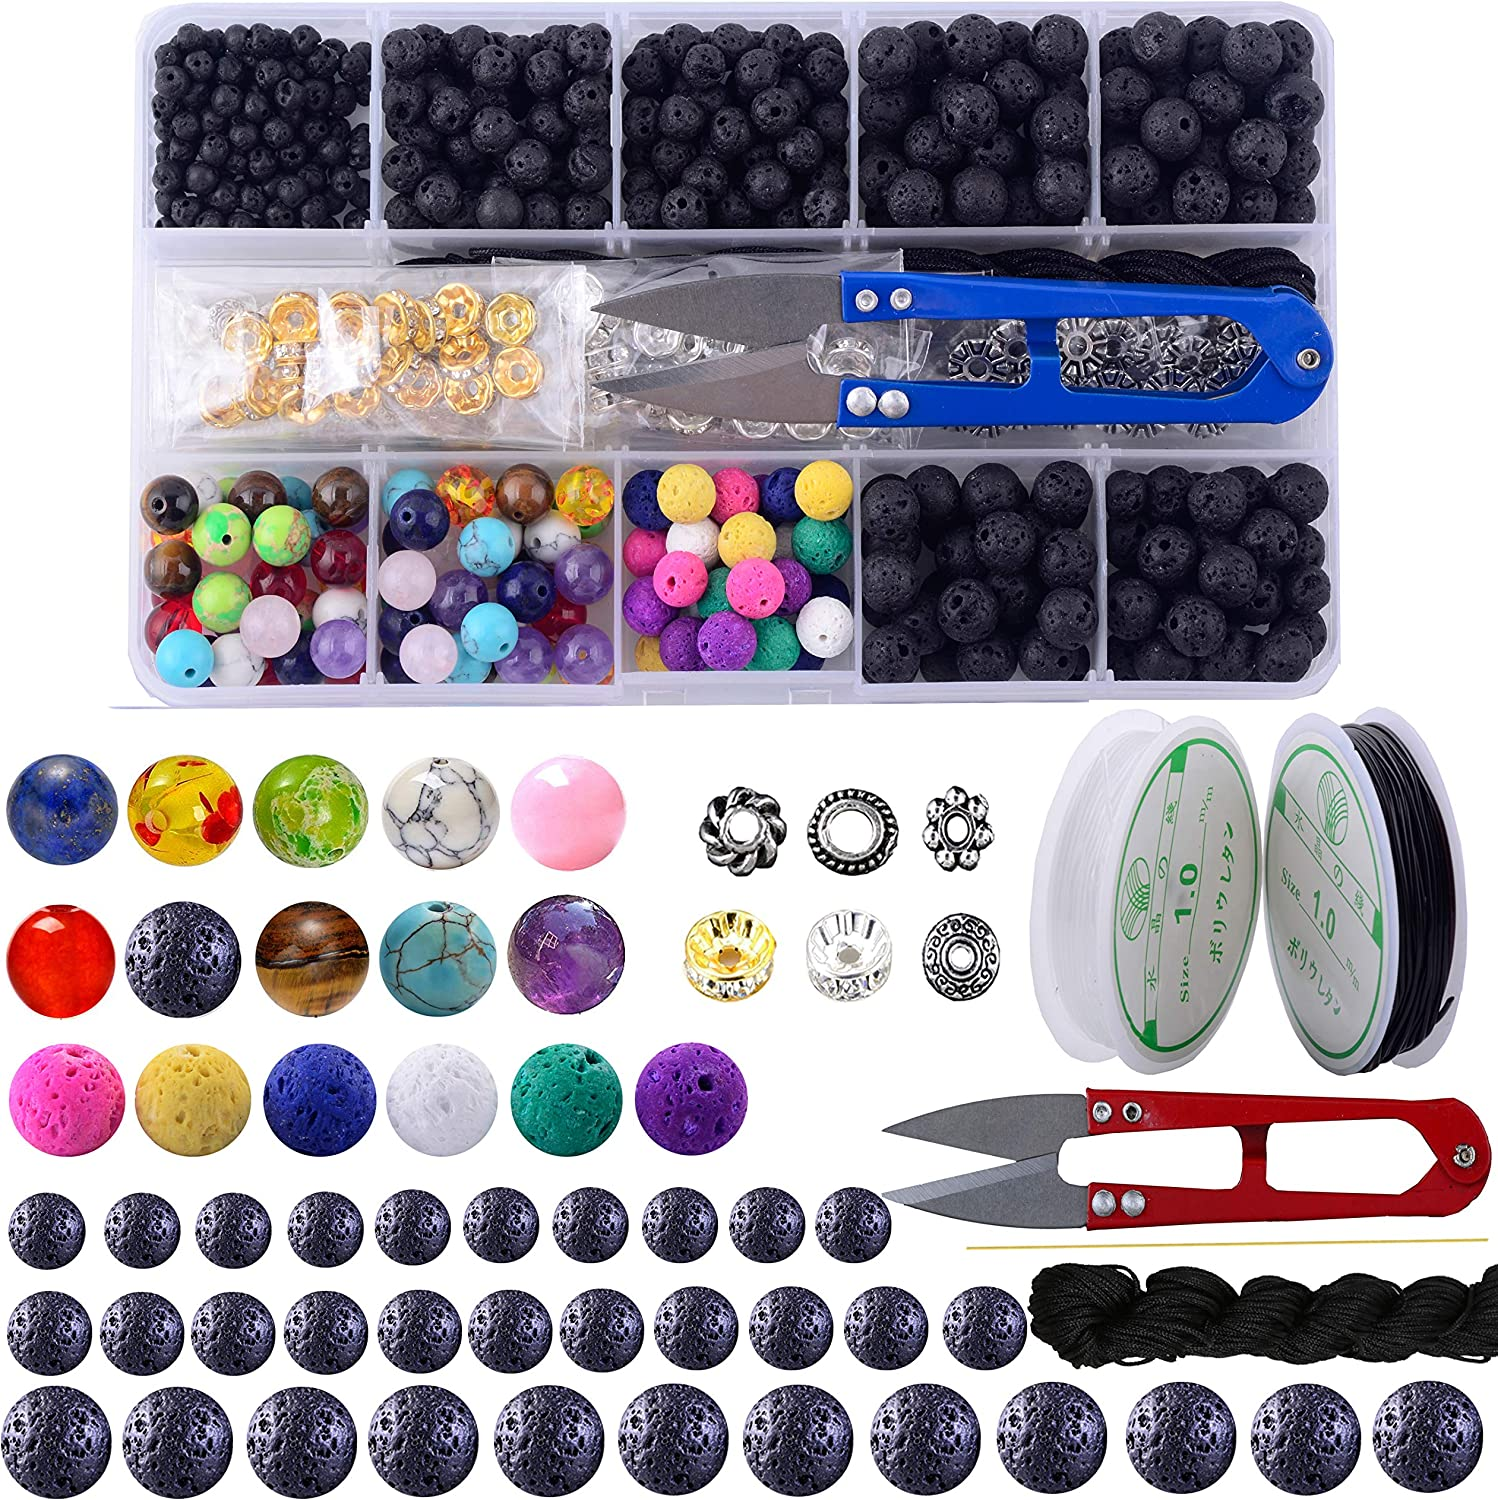 BESWORLDS Lava Stone Rock Bead Kit Colorful Natural Chakra Beads and Black Lava Rock Stone Essential Oil Diffuser Bead for Jewelry Making